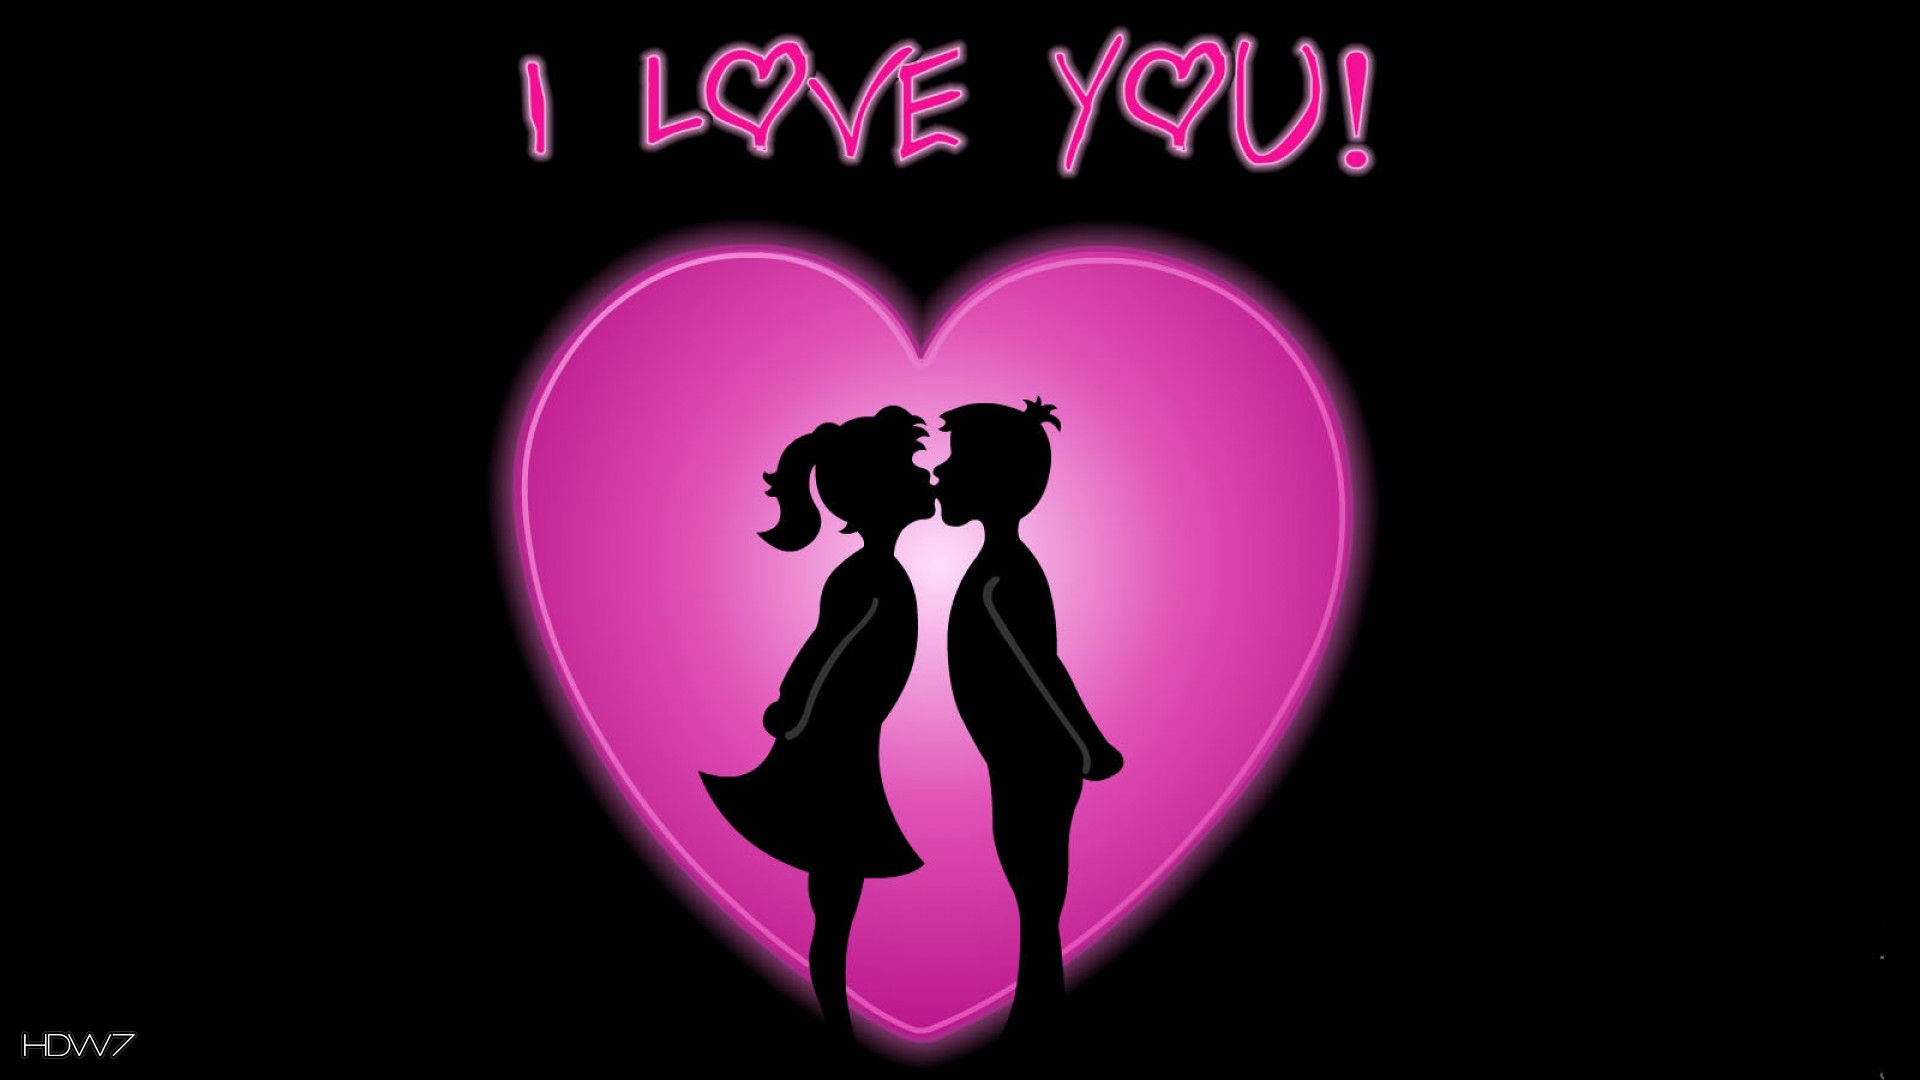 I Love You Couple Pink Heart Hd Wallpaper Gallery 381